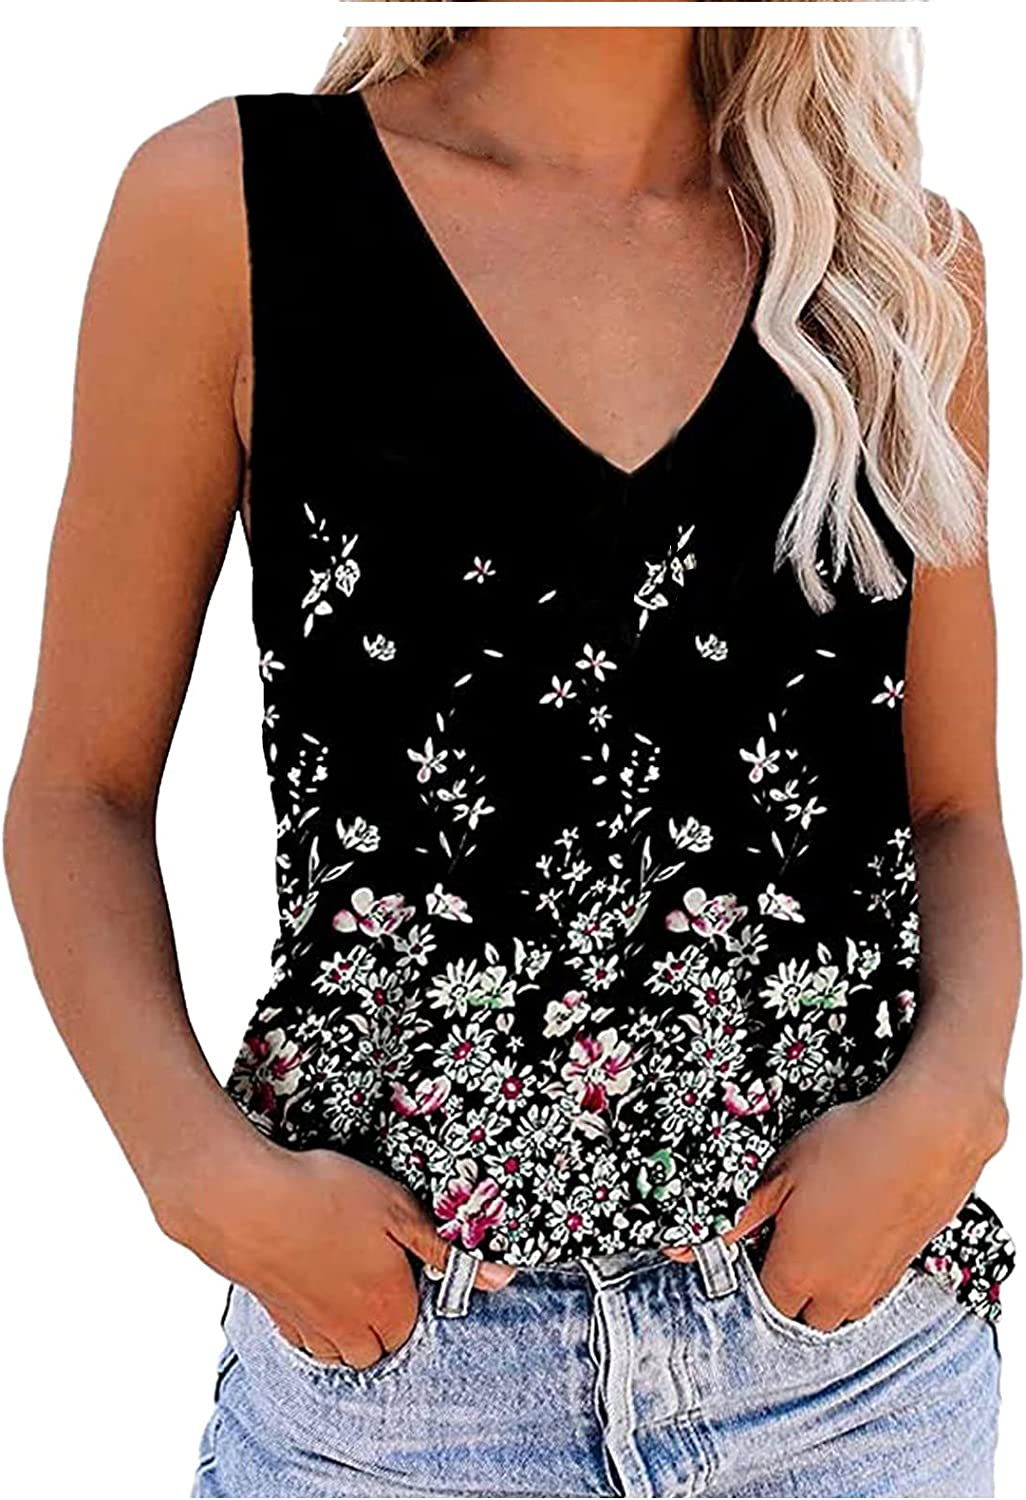 Eduavar Tank Tops for Women, Womens Summer Color Printed V Neck Sleeveless Vest T-Shirts Casual Loose Blouse Tunic Tops